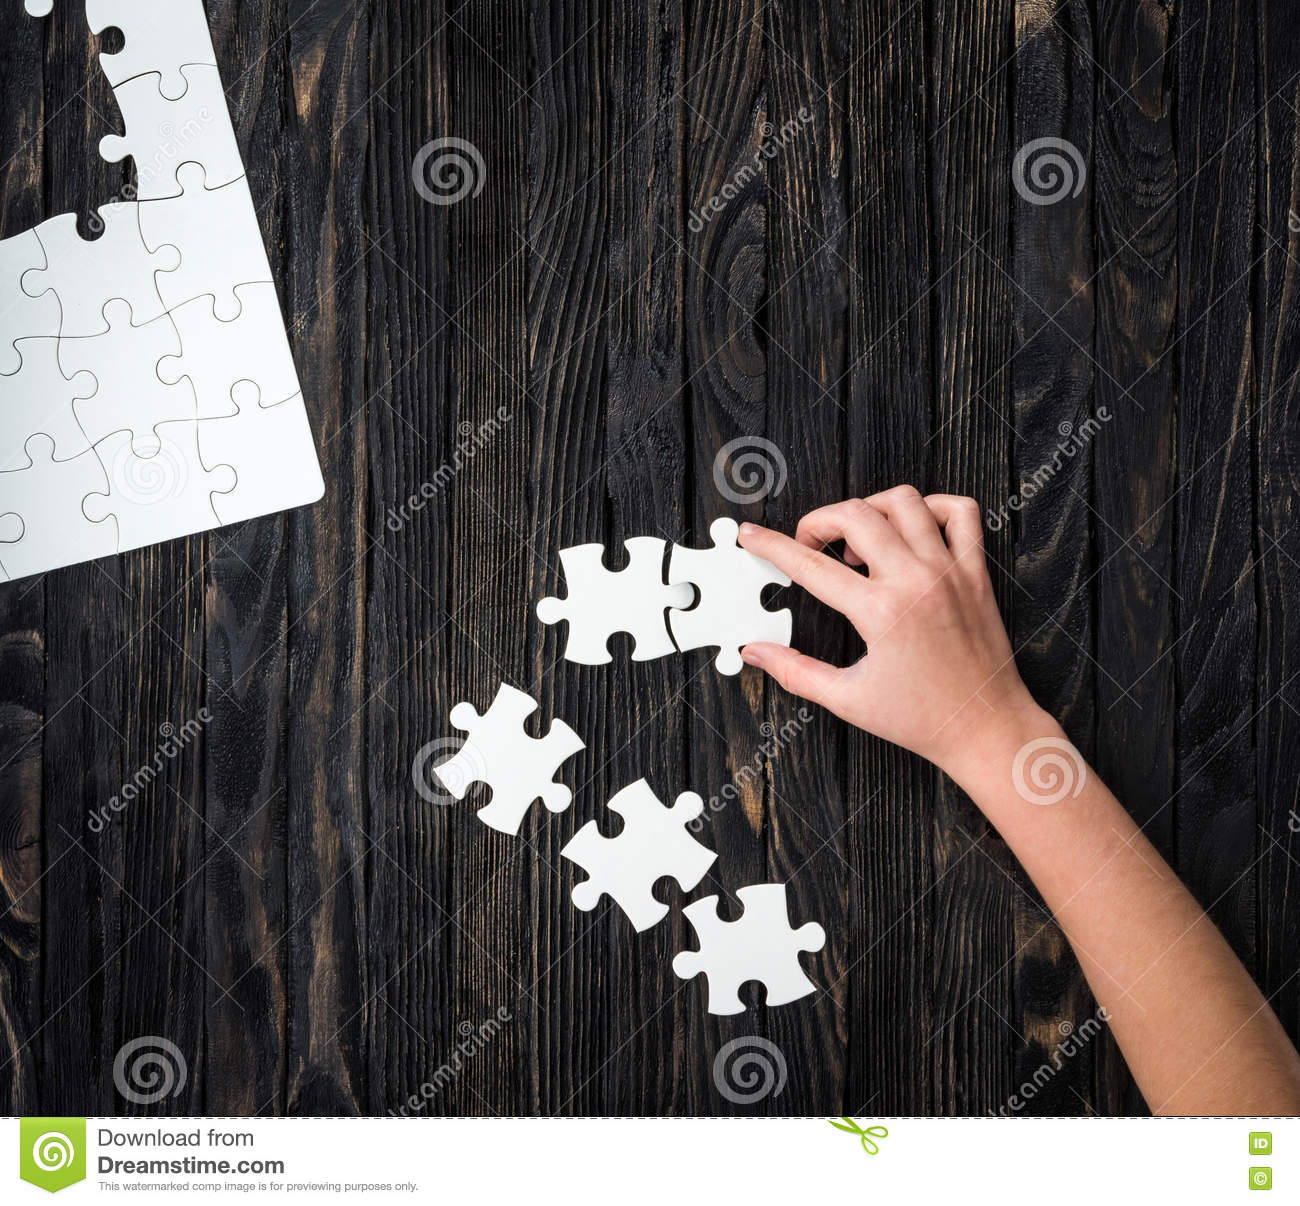 Hand starting to collect puzzle pieces